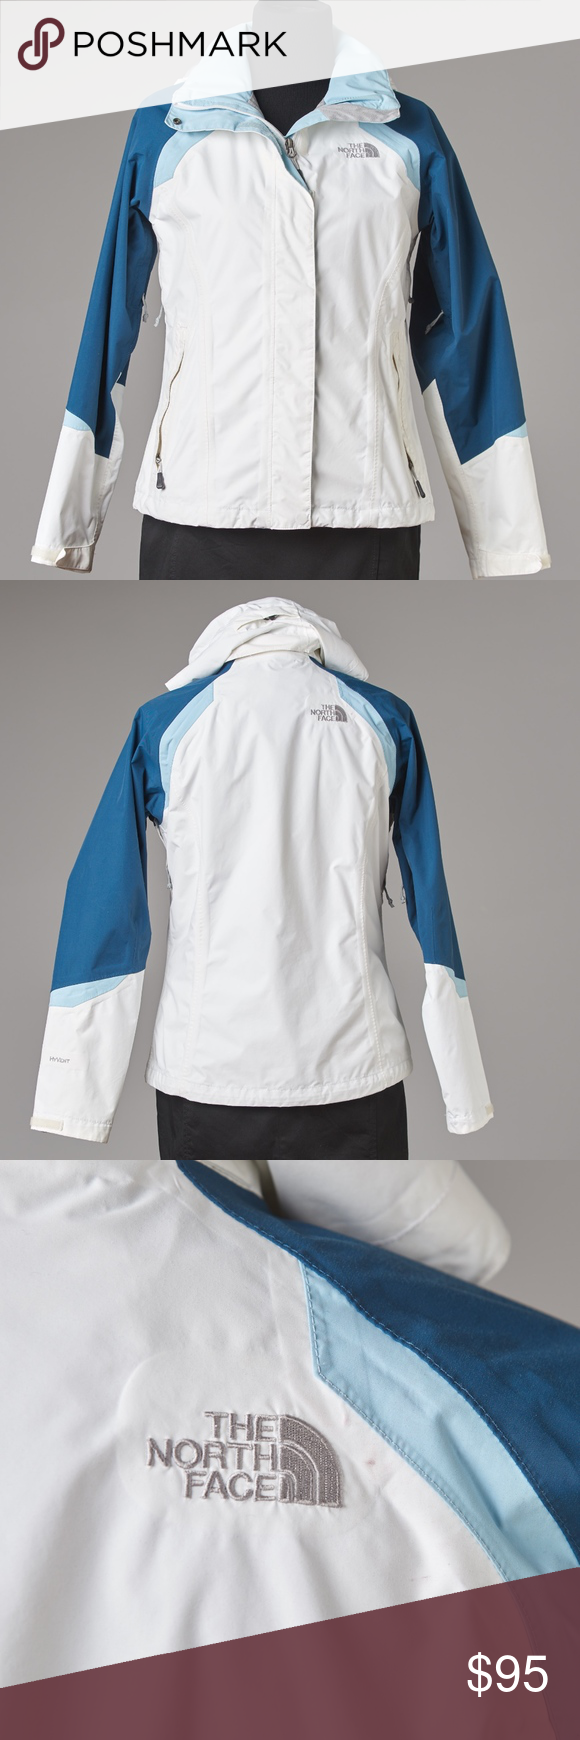 The North Face Jacket North Face Jacket Clothes Design Jackets [ 1740 x 580 Pixel ]